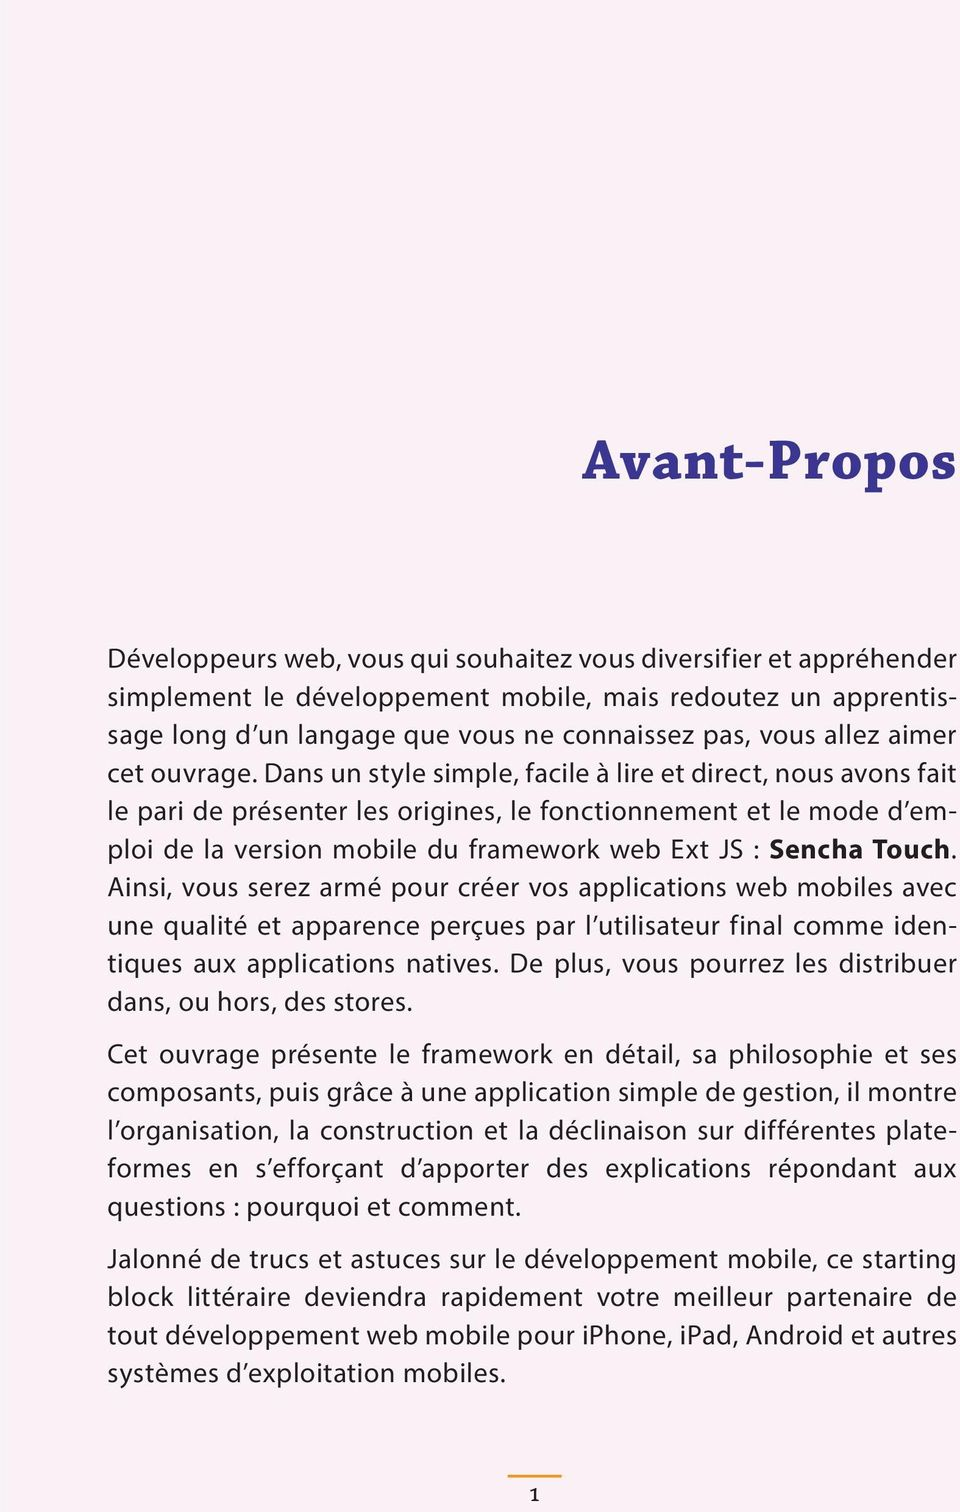 Dans un style simple, facile à lire et direct, nous avons fait le pari de présenter les origines, le fonctionnement et le mode d emploi de la version mobile du framework web Ext JS : Sencha Touch.